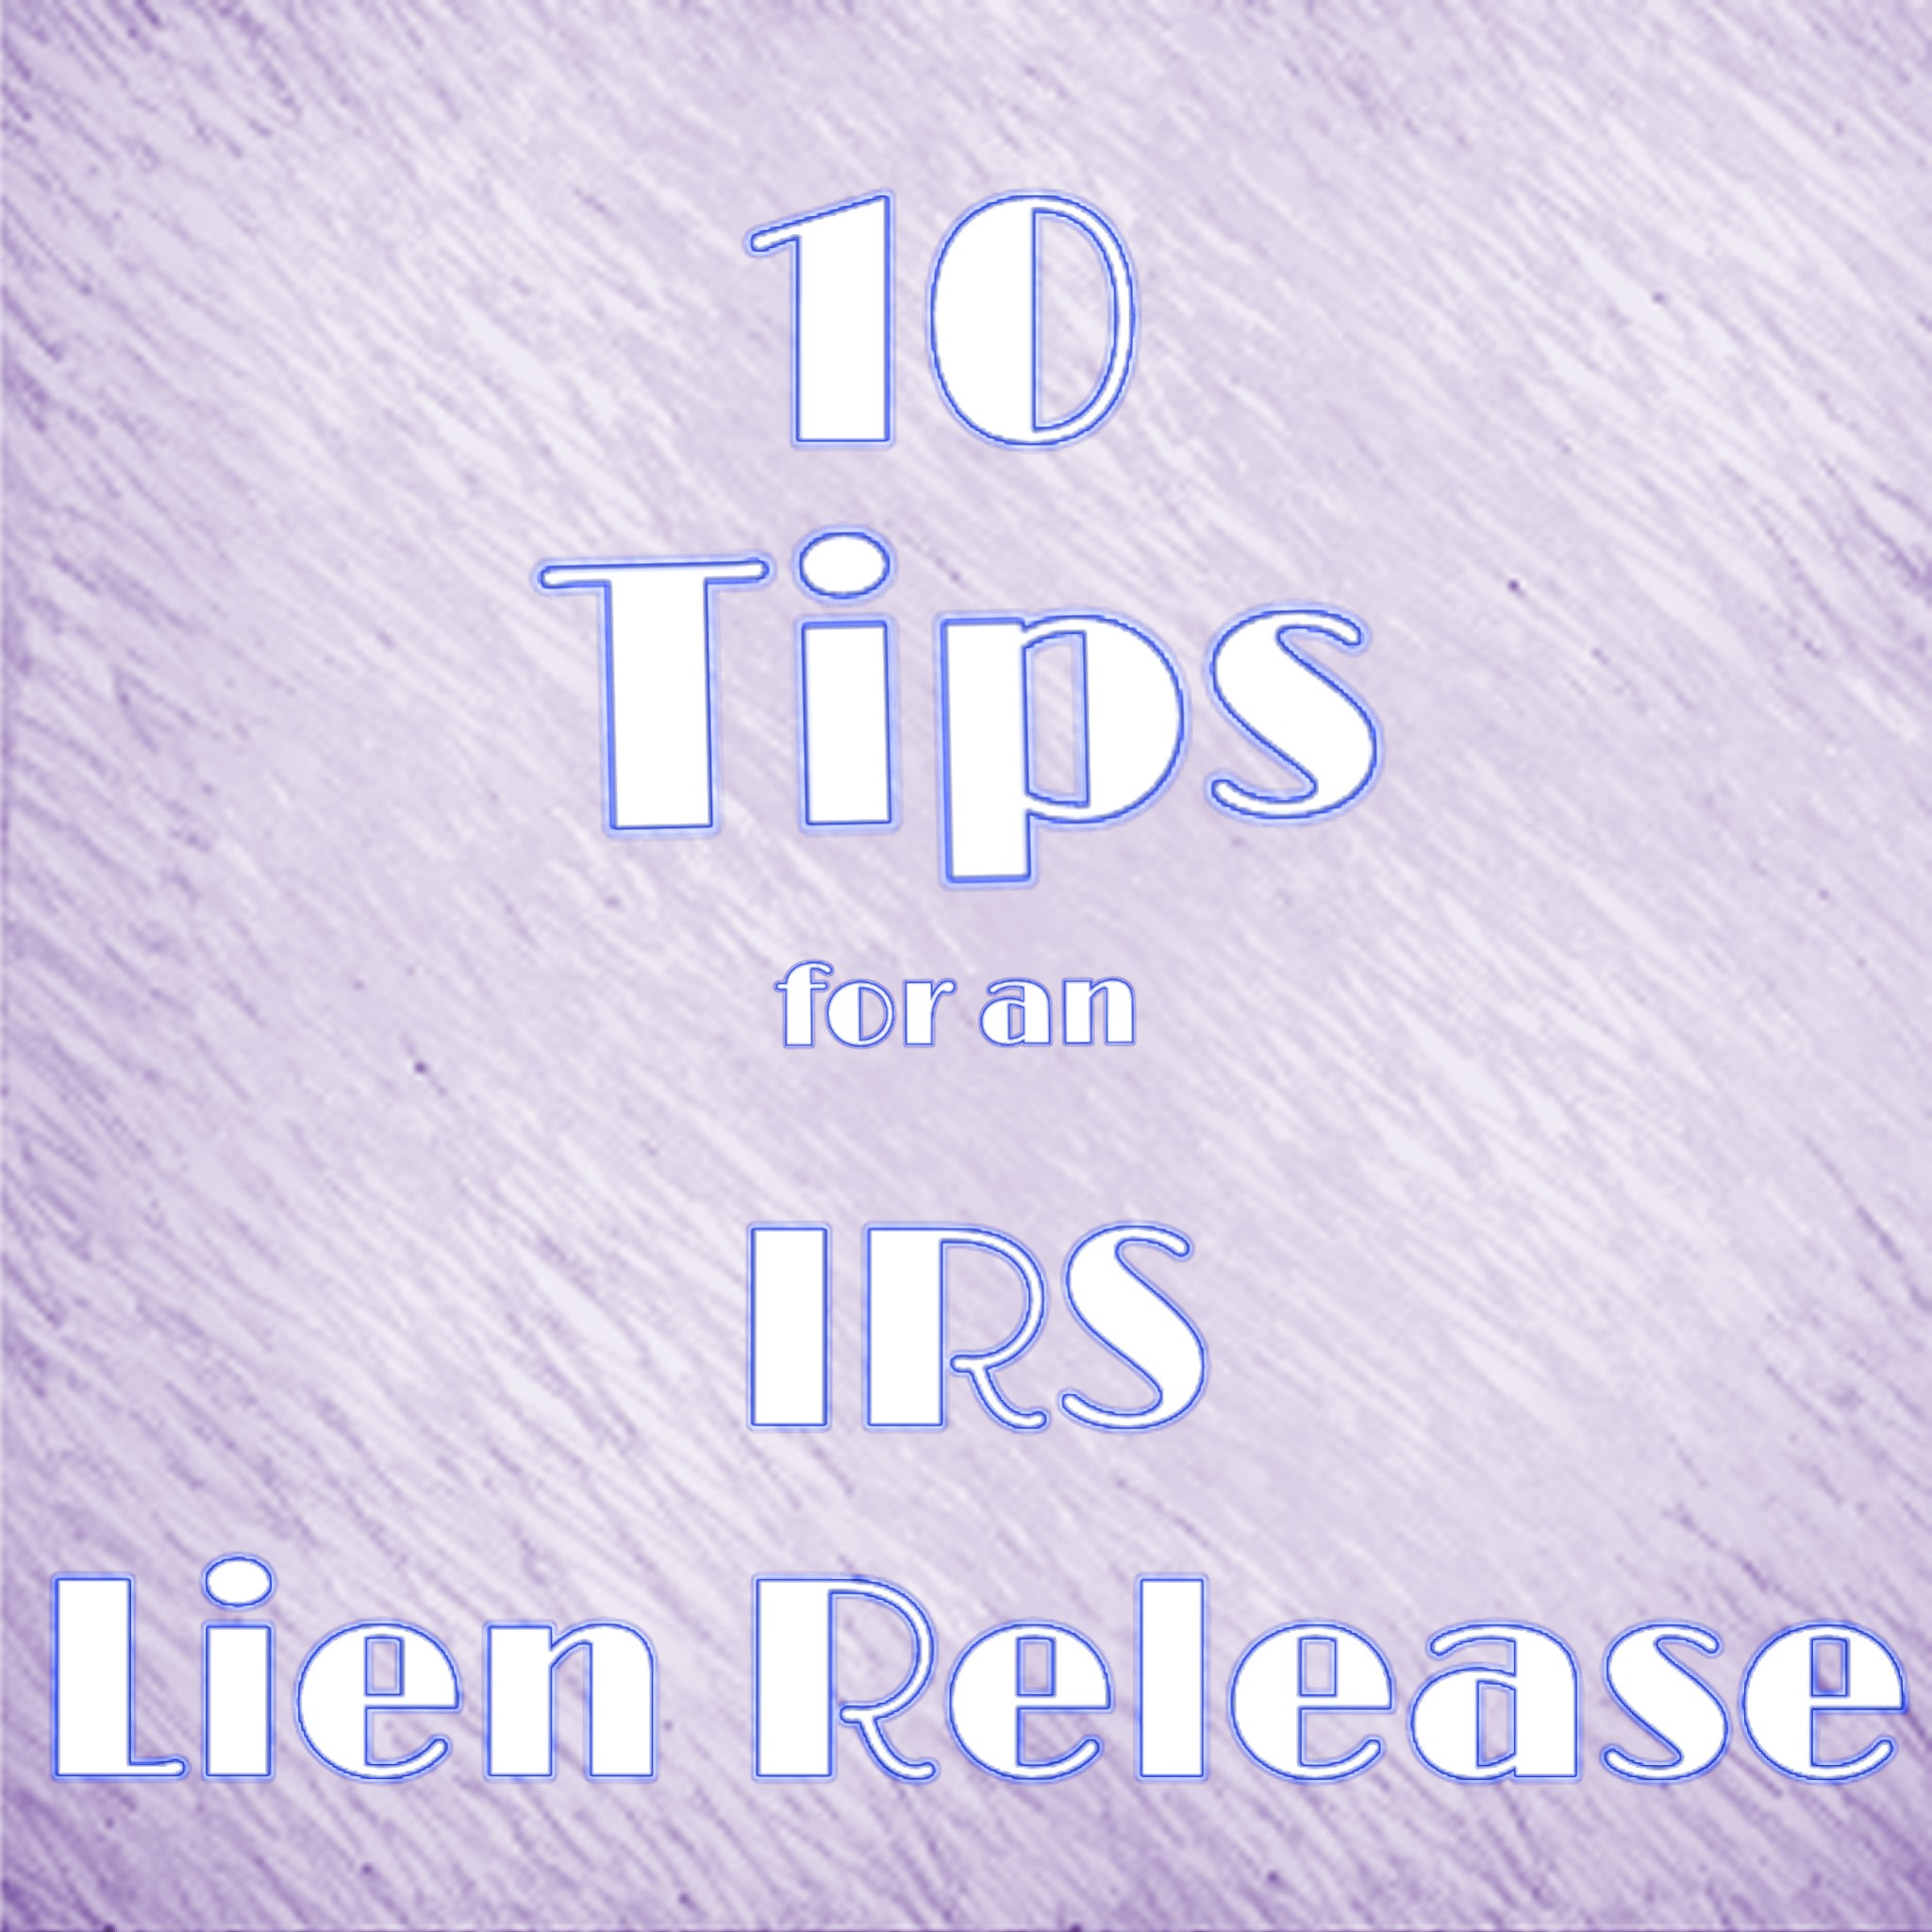 IRS Tax Lien-10 IRS Lien Release Tips